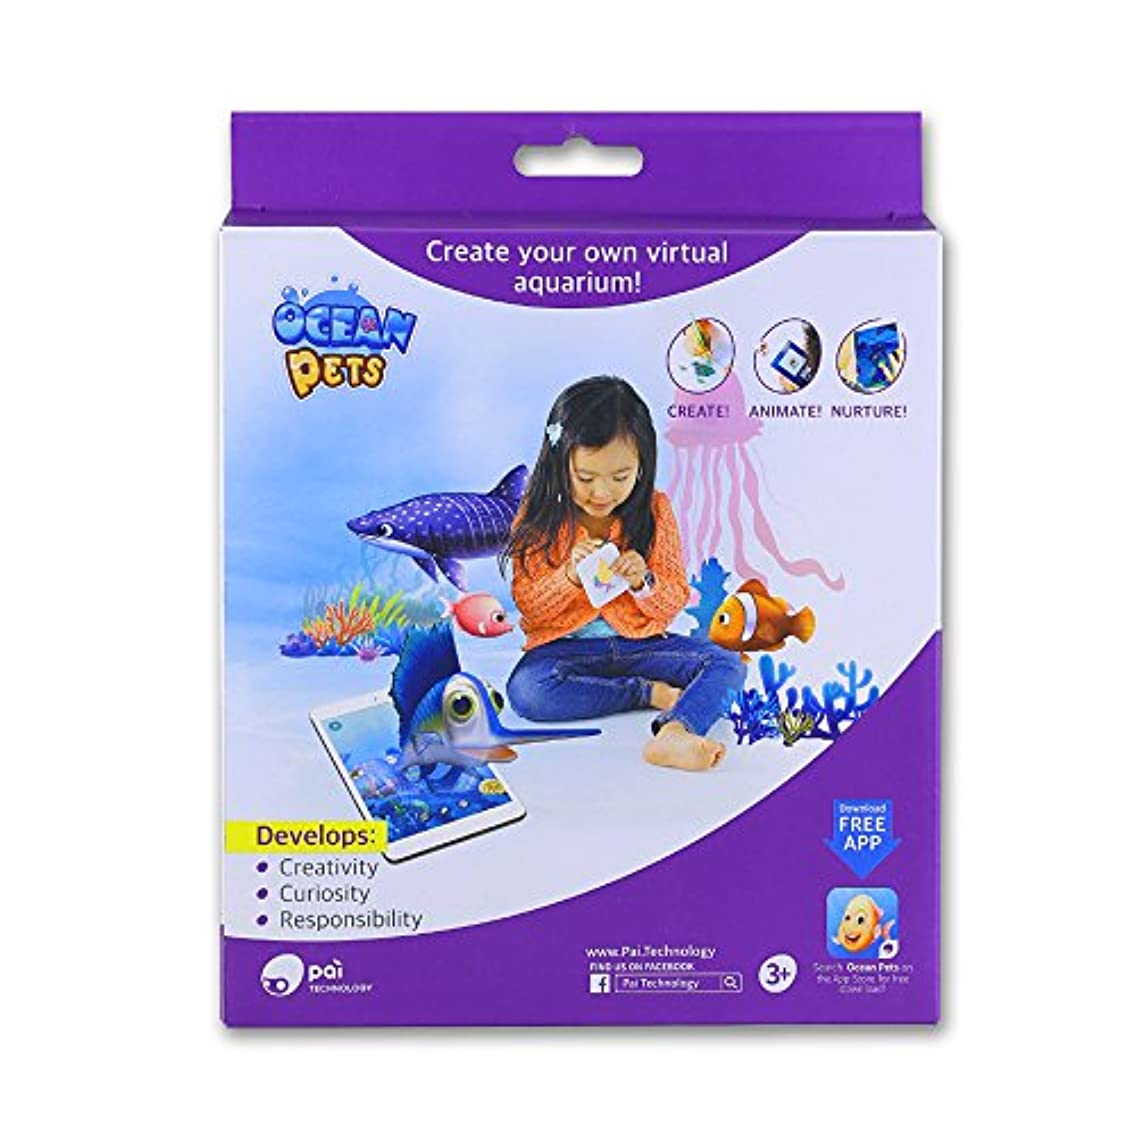 Ocean Pets Kids Toy Clay and Dough Artist Studio, 3D AR Fun Toy for iPad Game, 1 Count